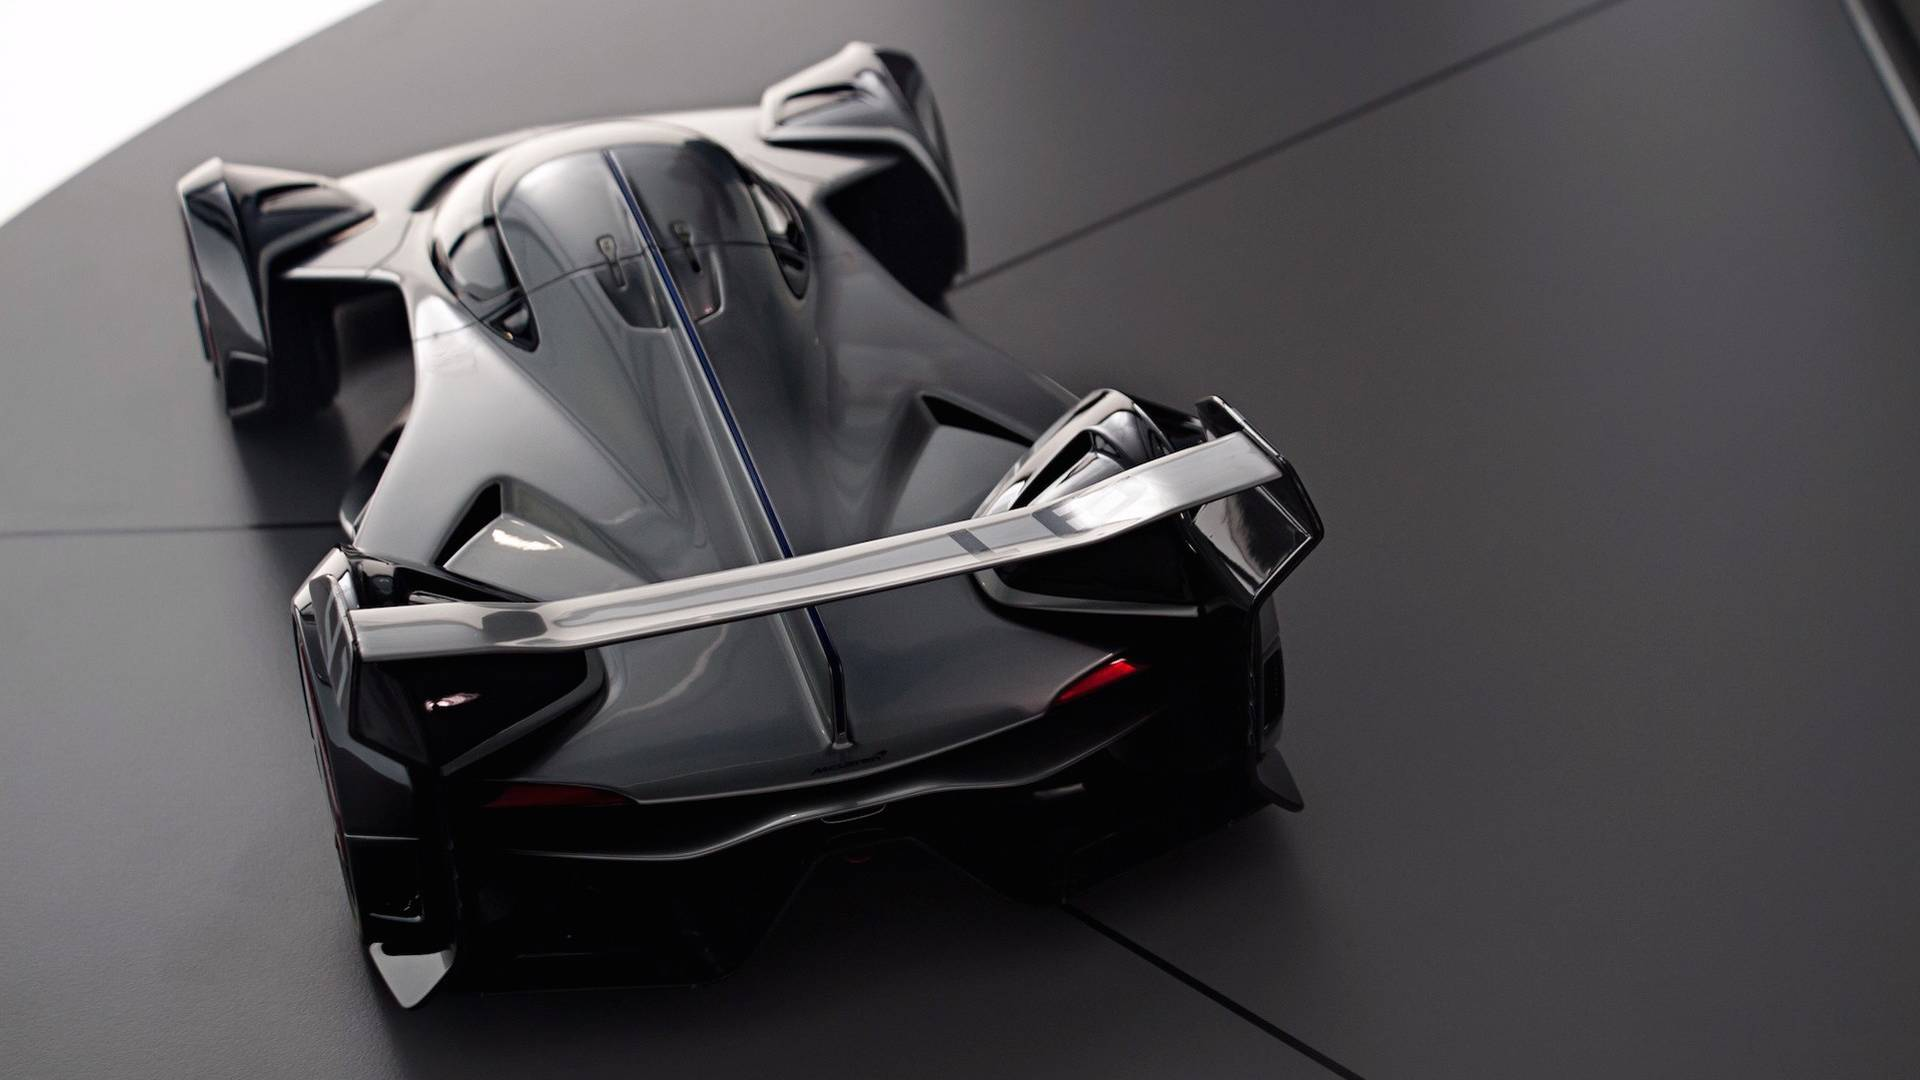 mclaren-ultimate-vision-gt-scale-model (8)